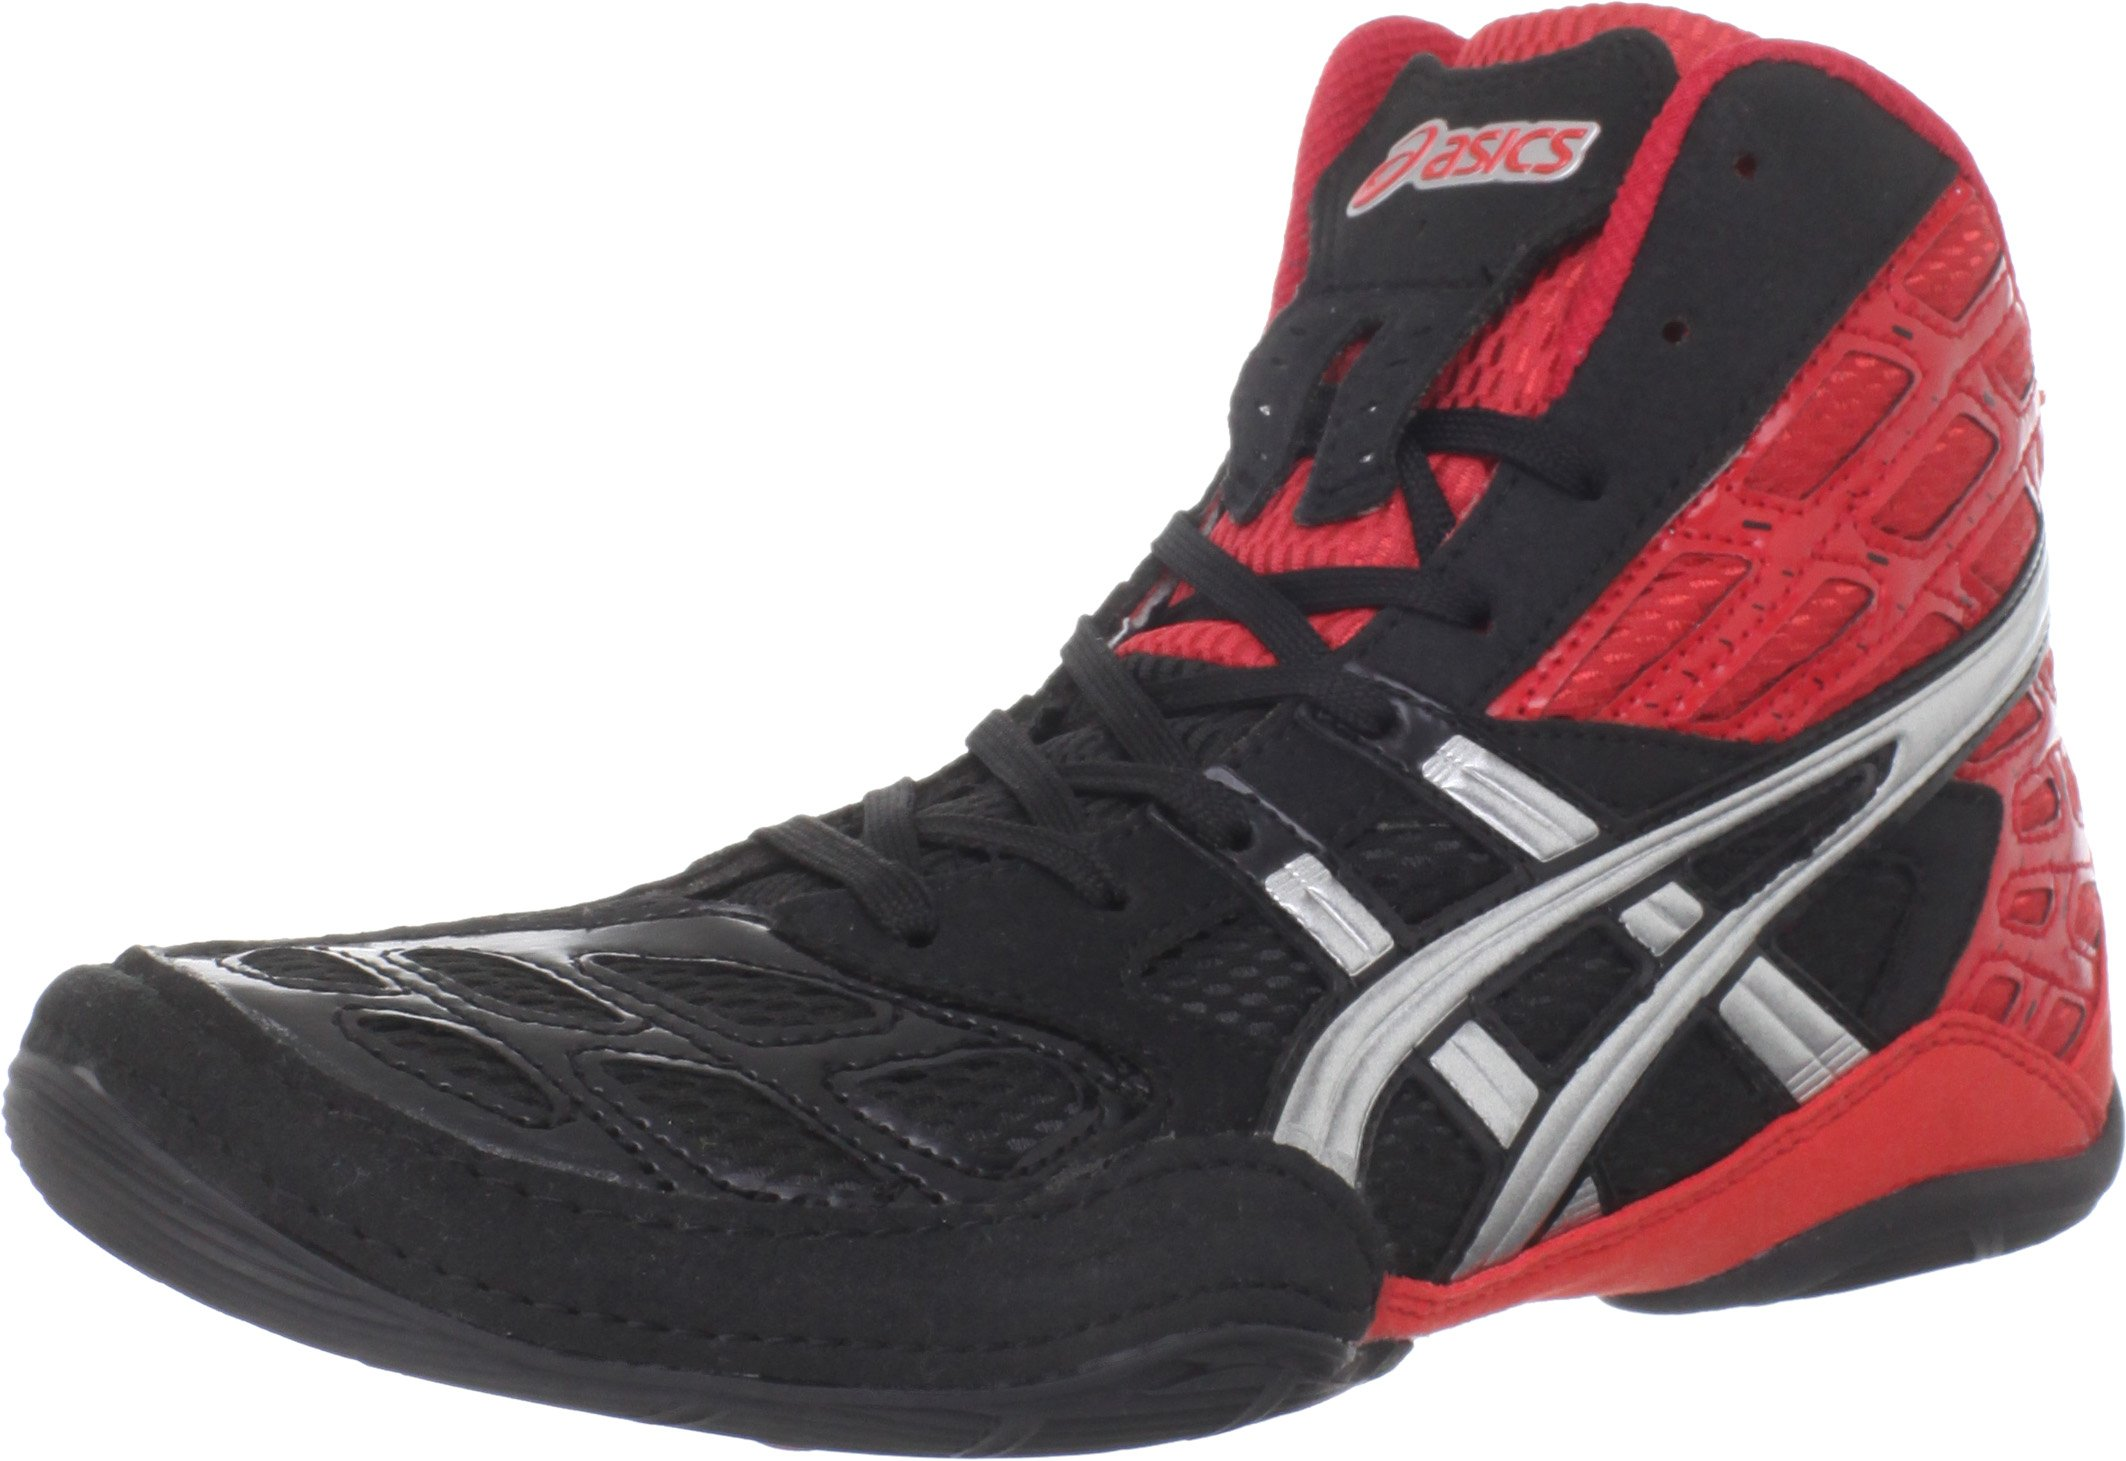 ASICS Men's Split Second 9 Wrestling Shoe,Red/Silver/Black,8.5 M US by ASICS